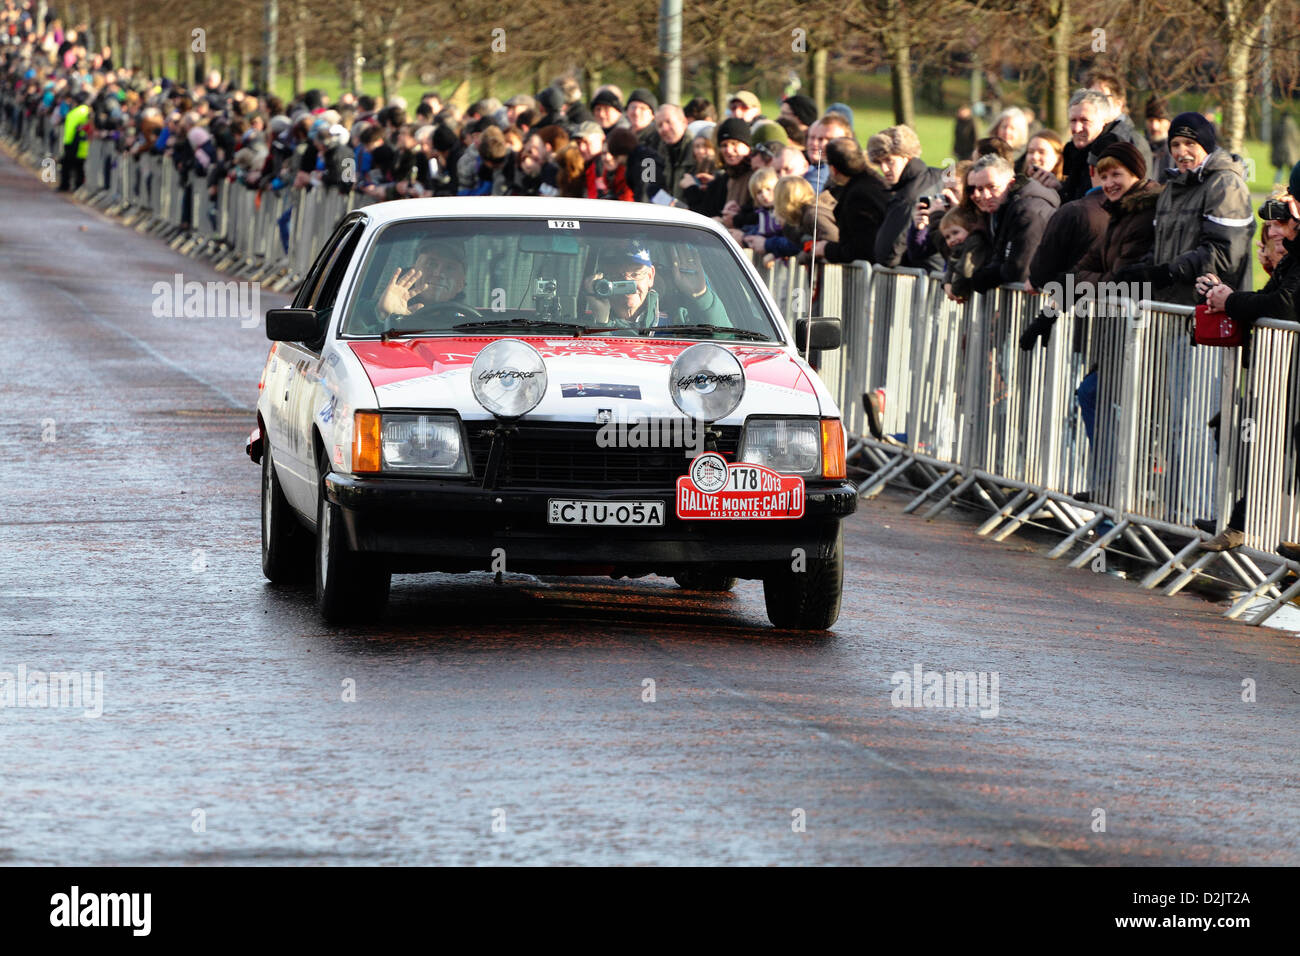 Spectators Watching A Holden Car Departing From Glasgow Green After The Start Of Monte Carlo